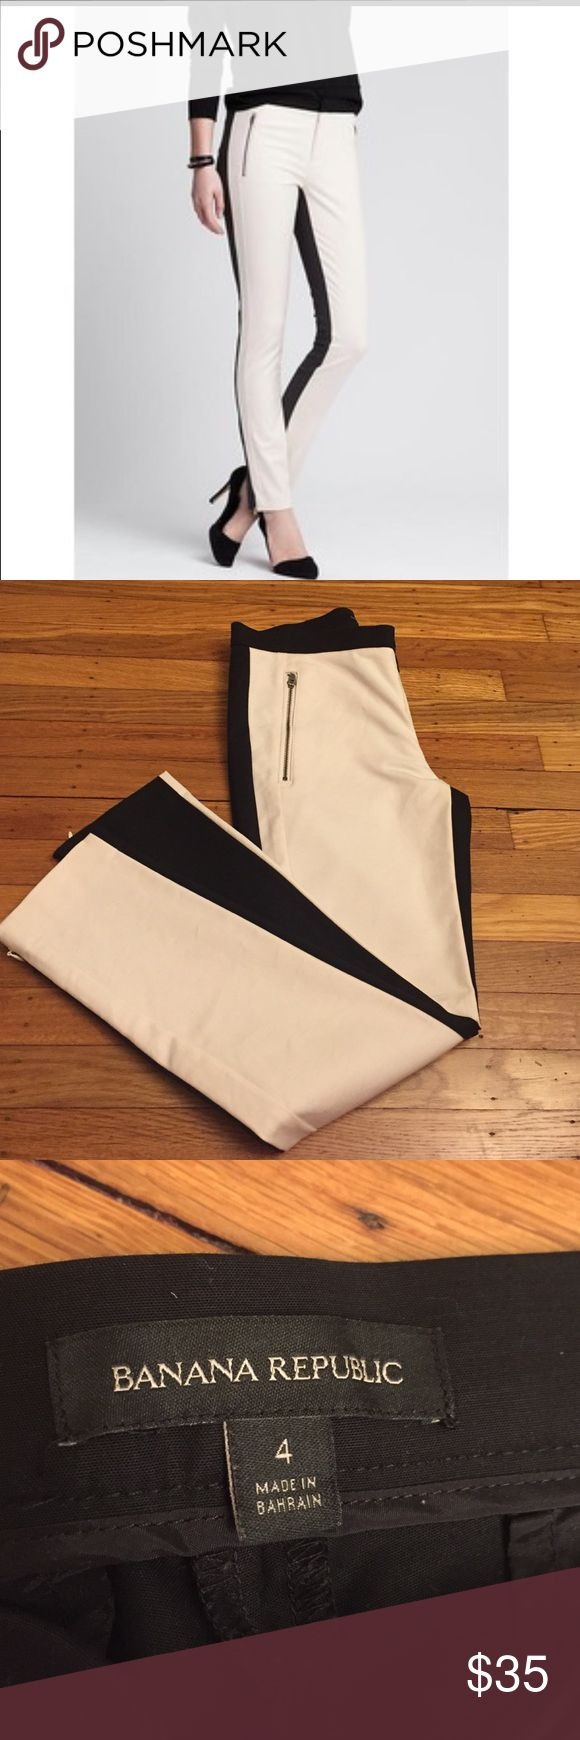 Banana Republic Woman's Skinny Ankle Zip Pants Sexy skinny pants, ankle zips, fit below waist, stretchy material, two zip pockets, purchased at regular Banana Republic store, maybe worn twice, perfect condition. Sold out online, make them yours!!! Banana Republic Pants Ankle & Cropped